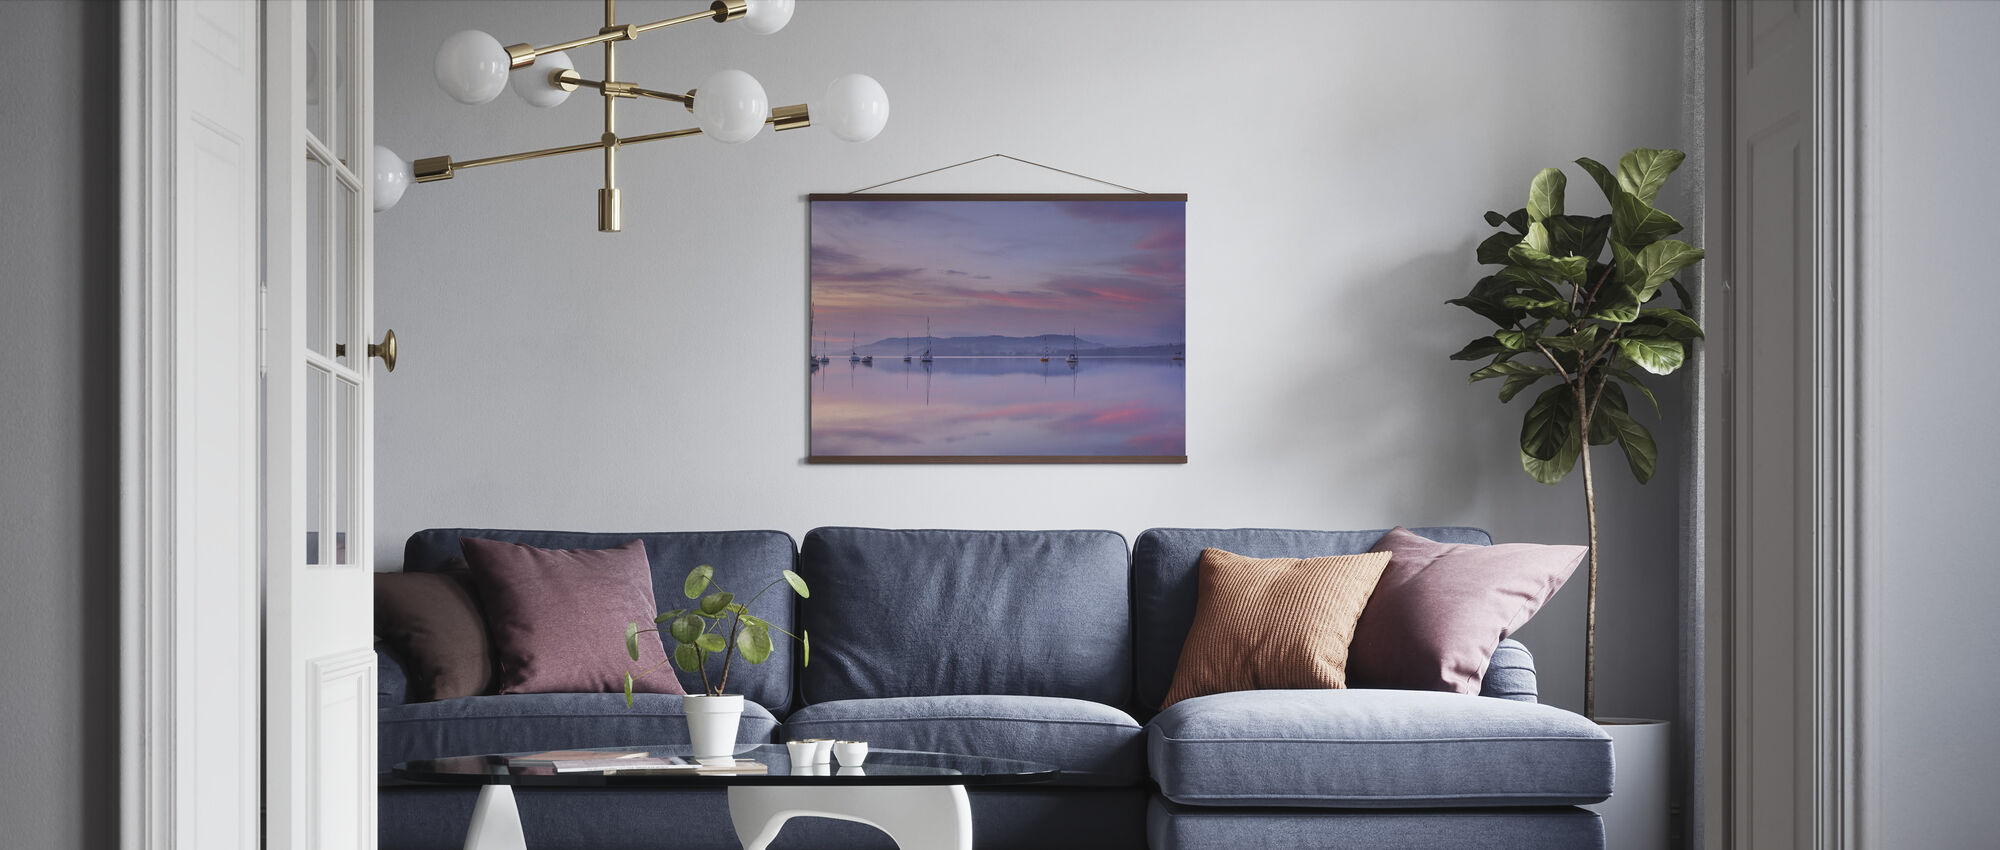 Morning Mood - Poster - Living Room